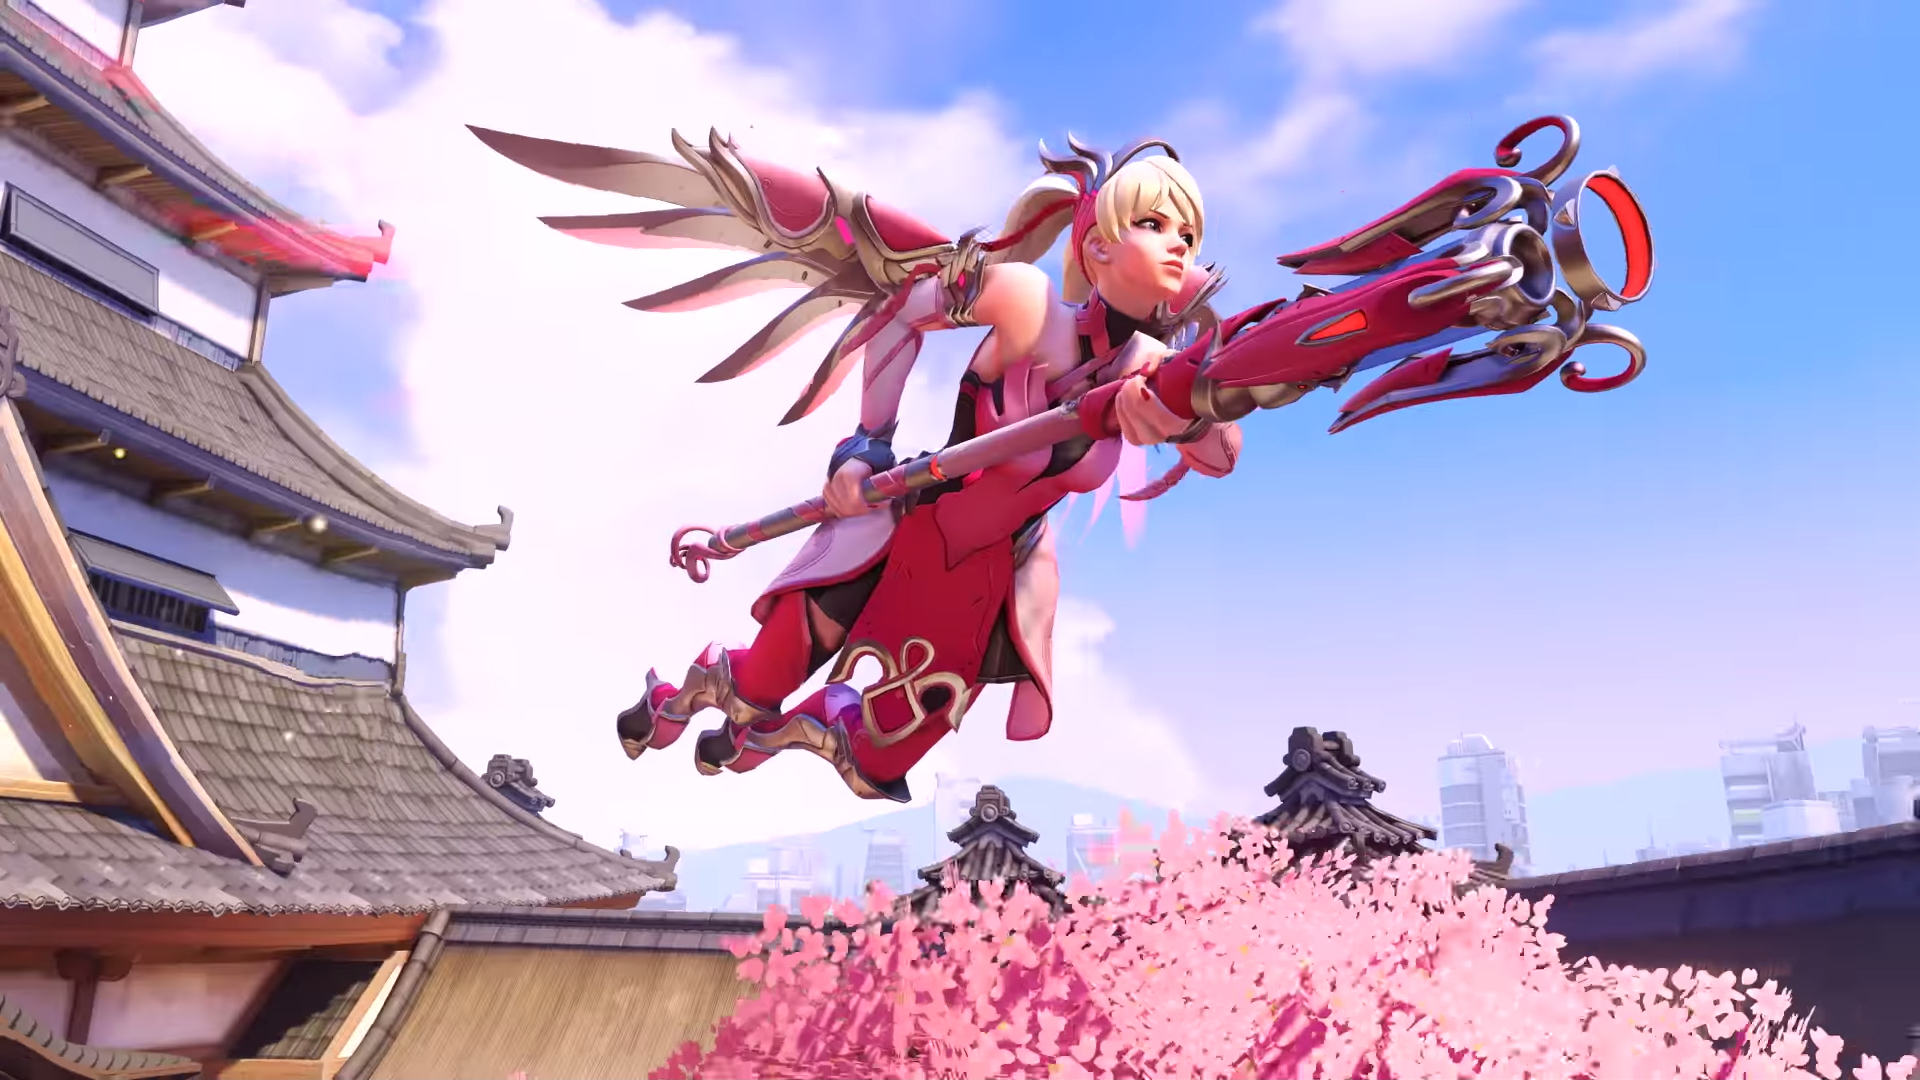 Pink Mercy skin comes to Overwatch, all proceeds go to charity